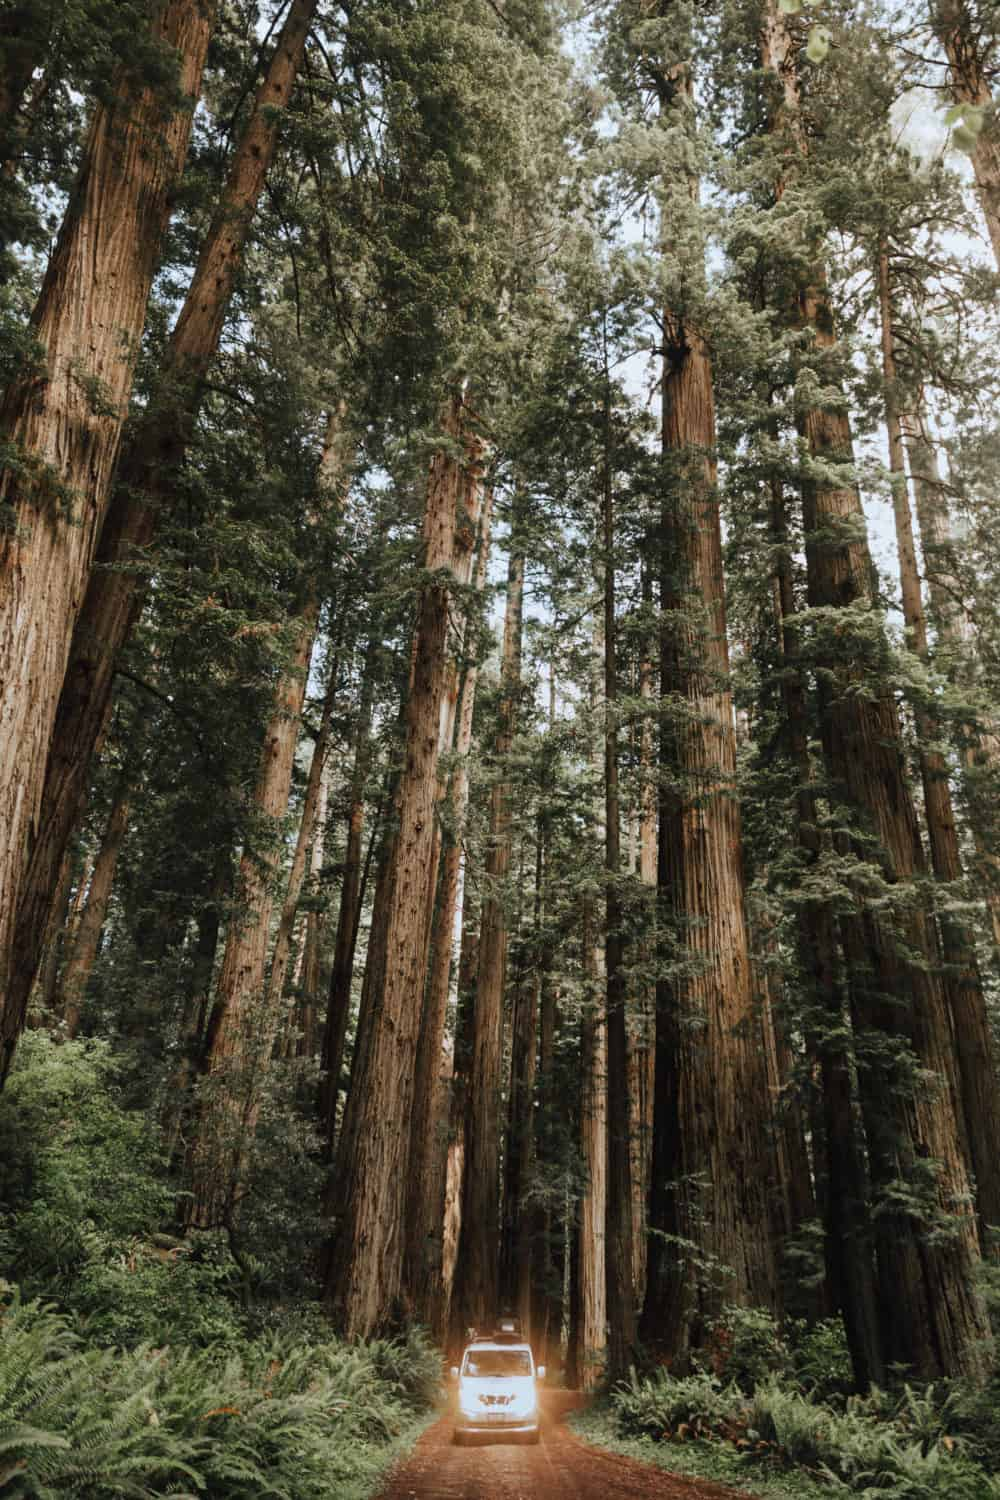 Road trip to Northern California - Redwoods National Park